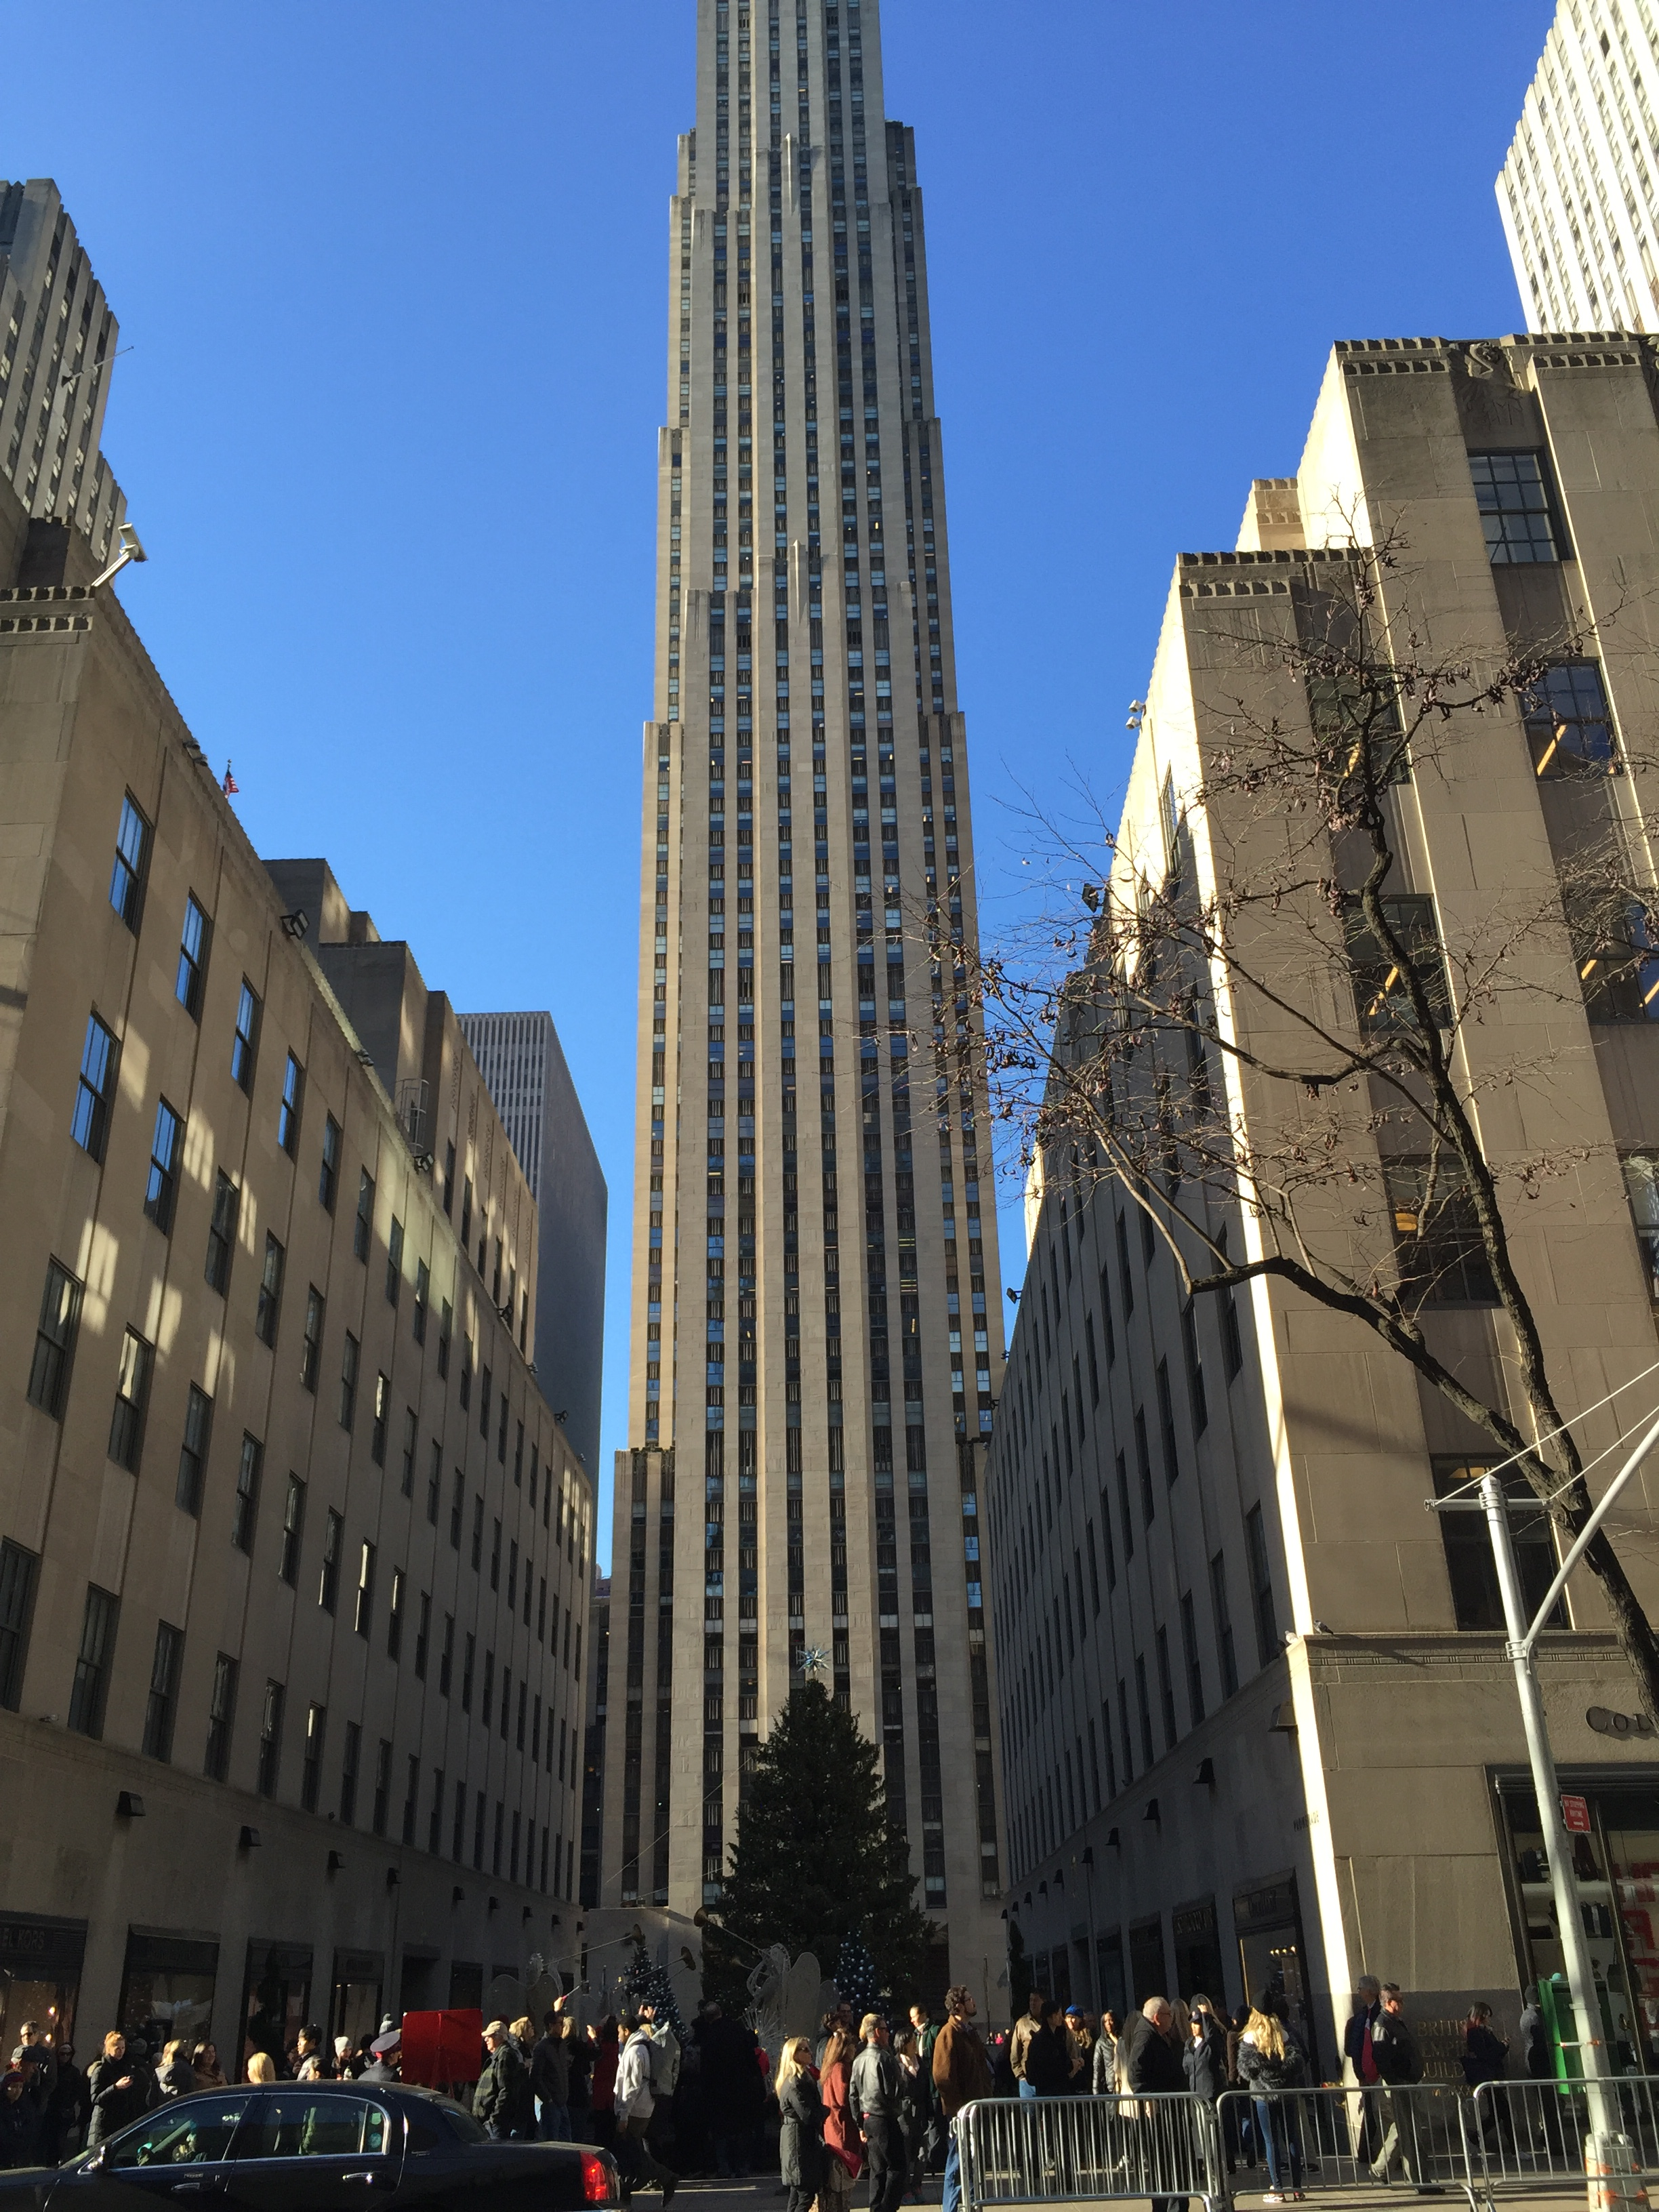 Cucina Restaurant Rockefeller Center Nyc A Tour Of Rockefeller Center 2015 12 04 Flashmoment